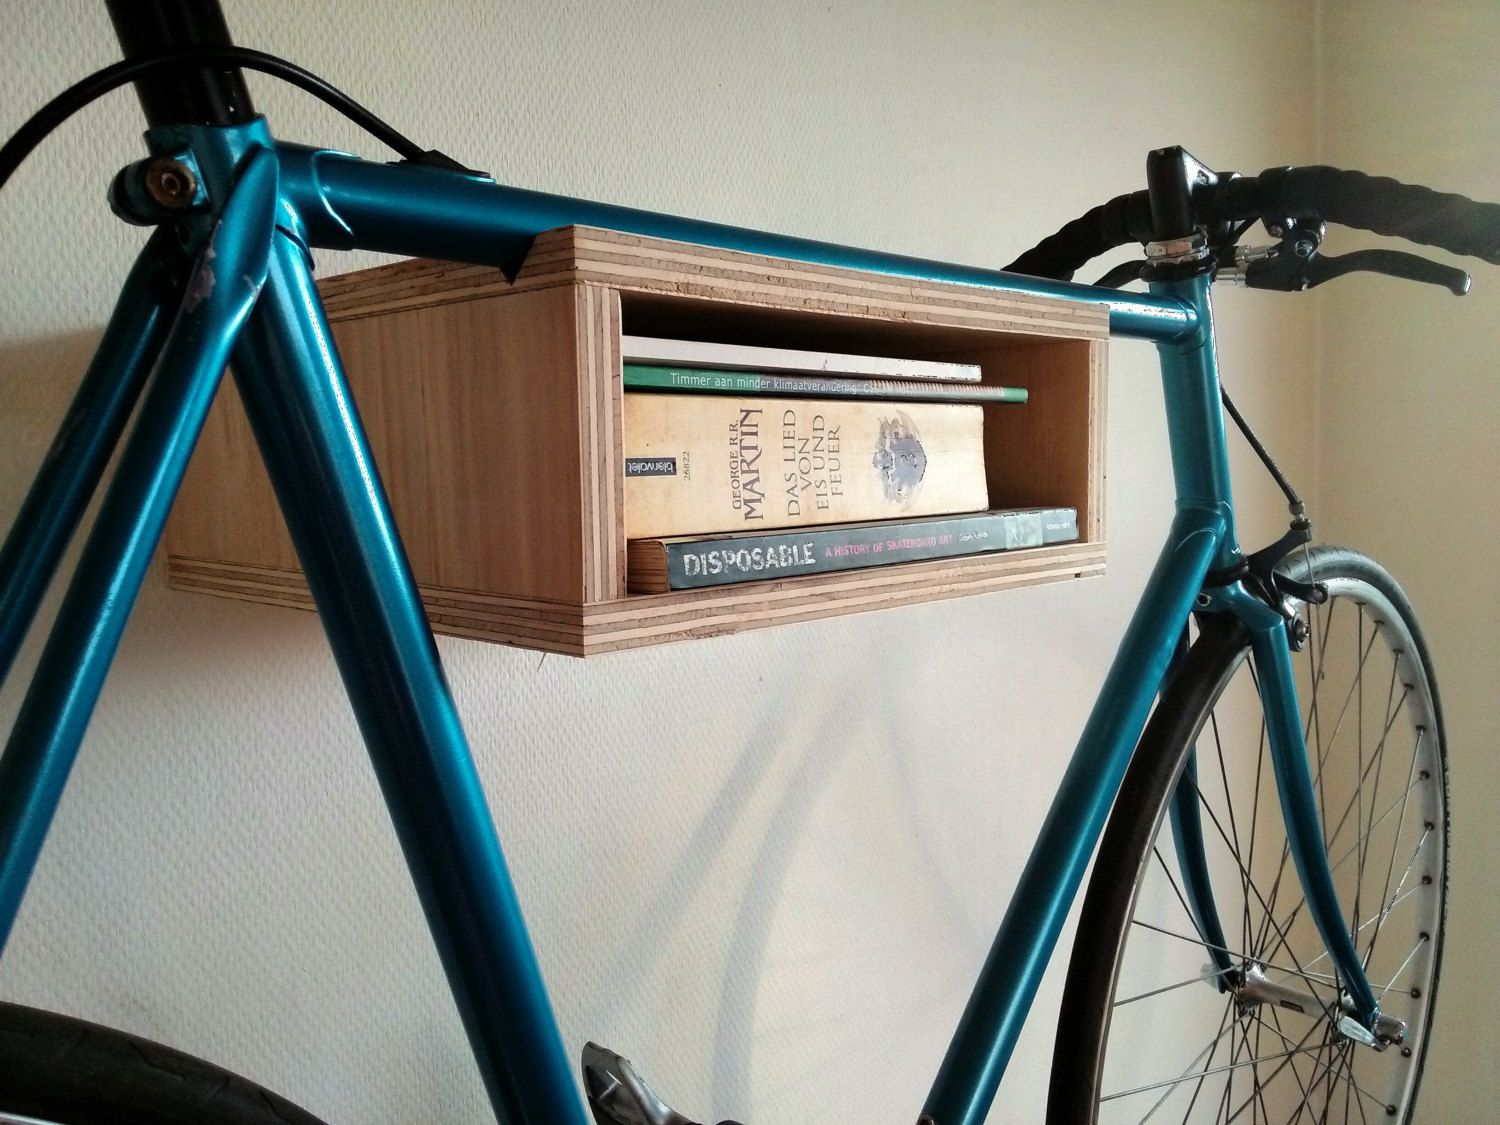 Basic Wooden Bike Rack Small Bike Storage Cabinet Wall Etsy Bike Storage Bike Storage Cabinet Wooden Bike